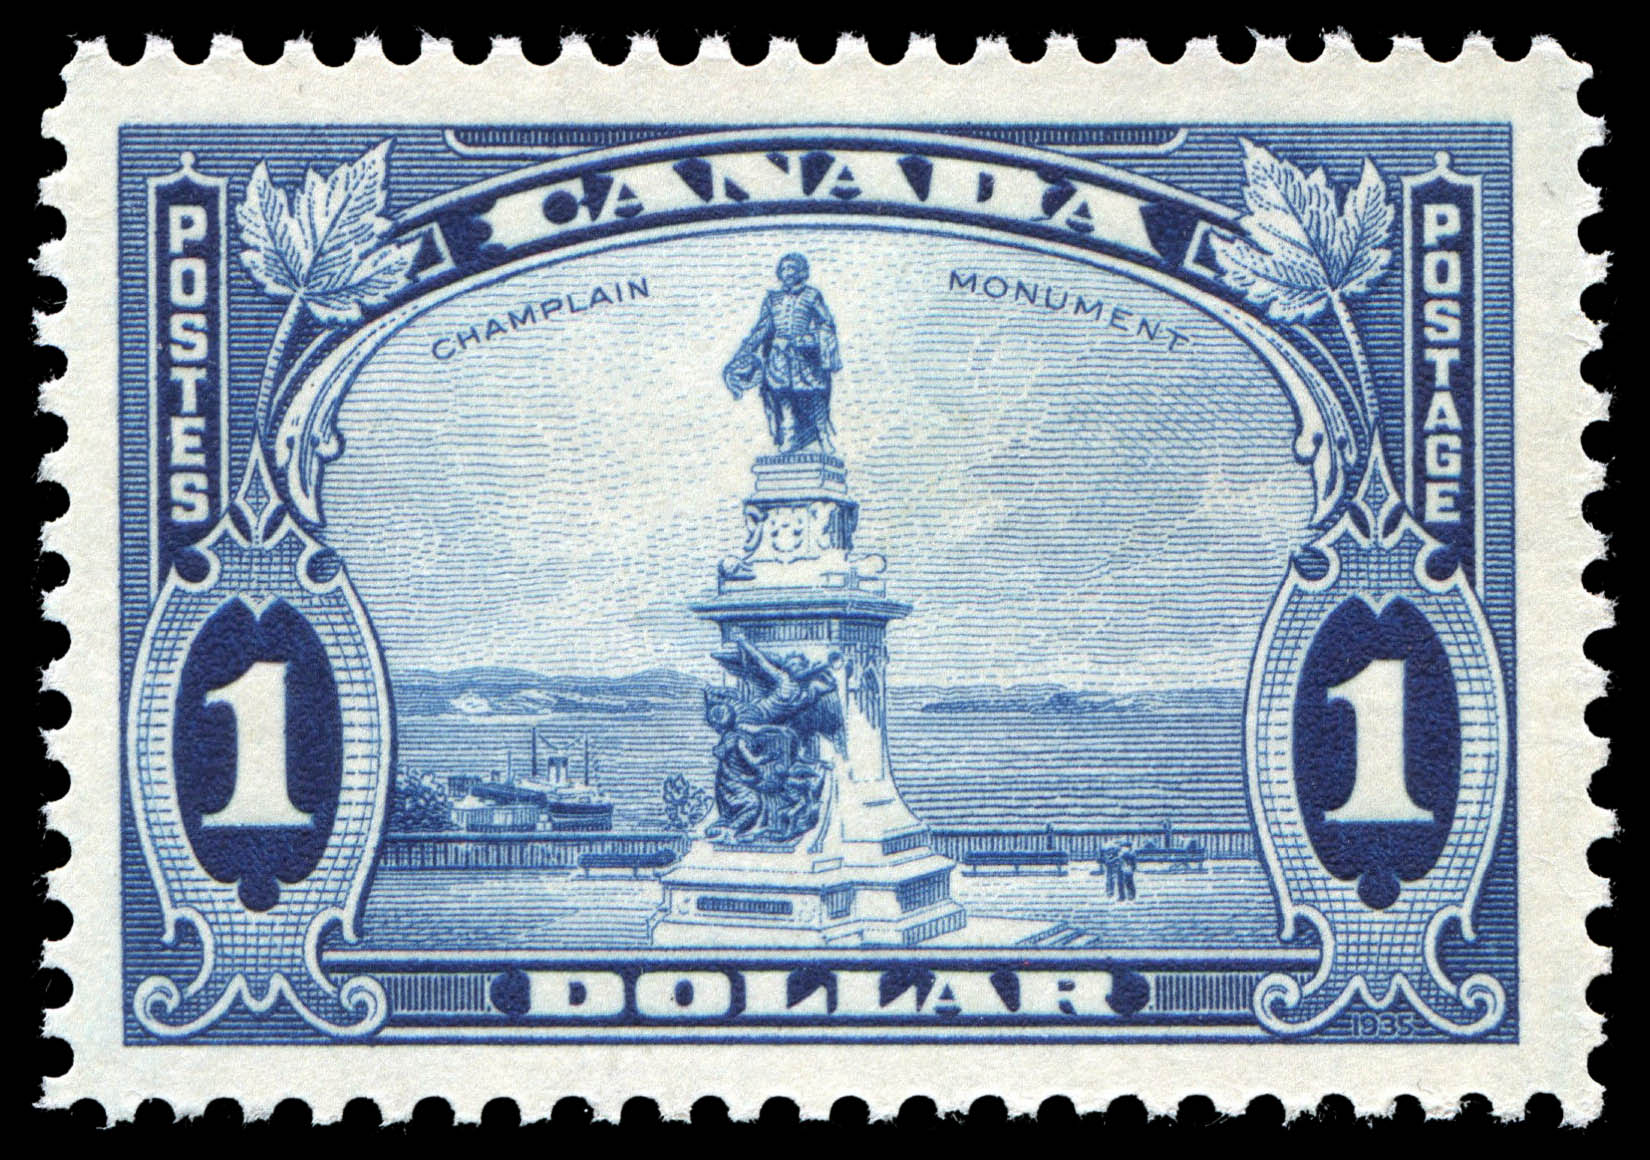 Champlain Monument Canada Postage Stamp